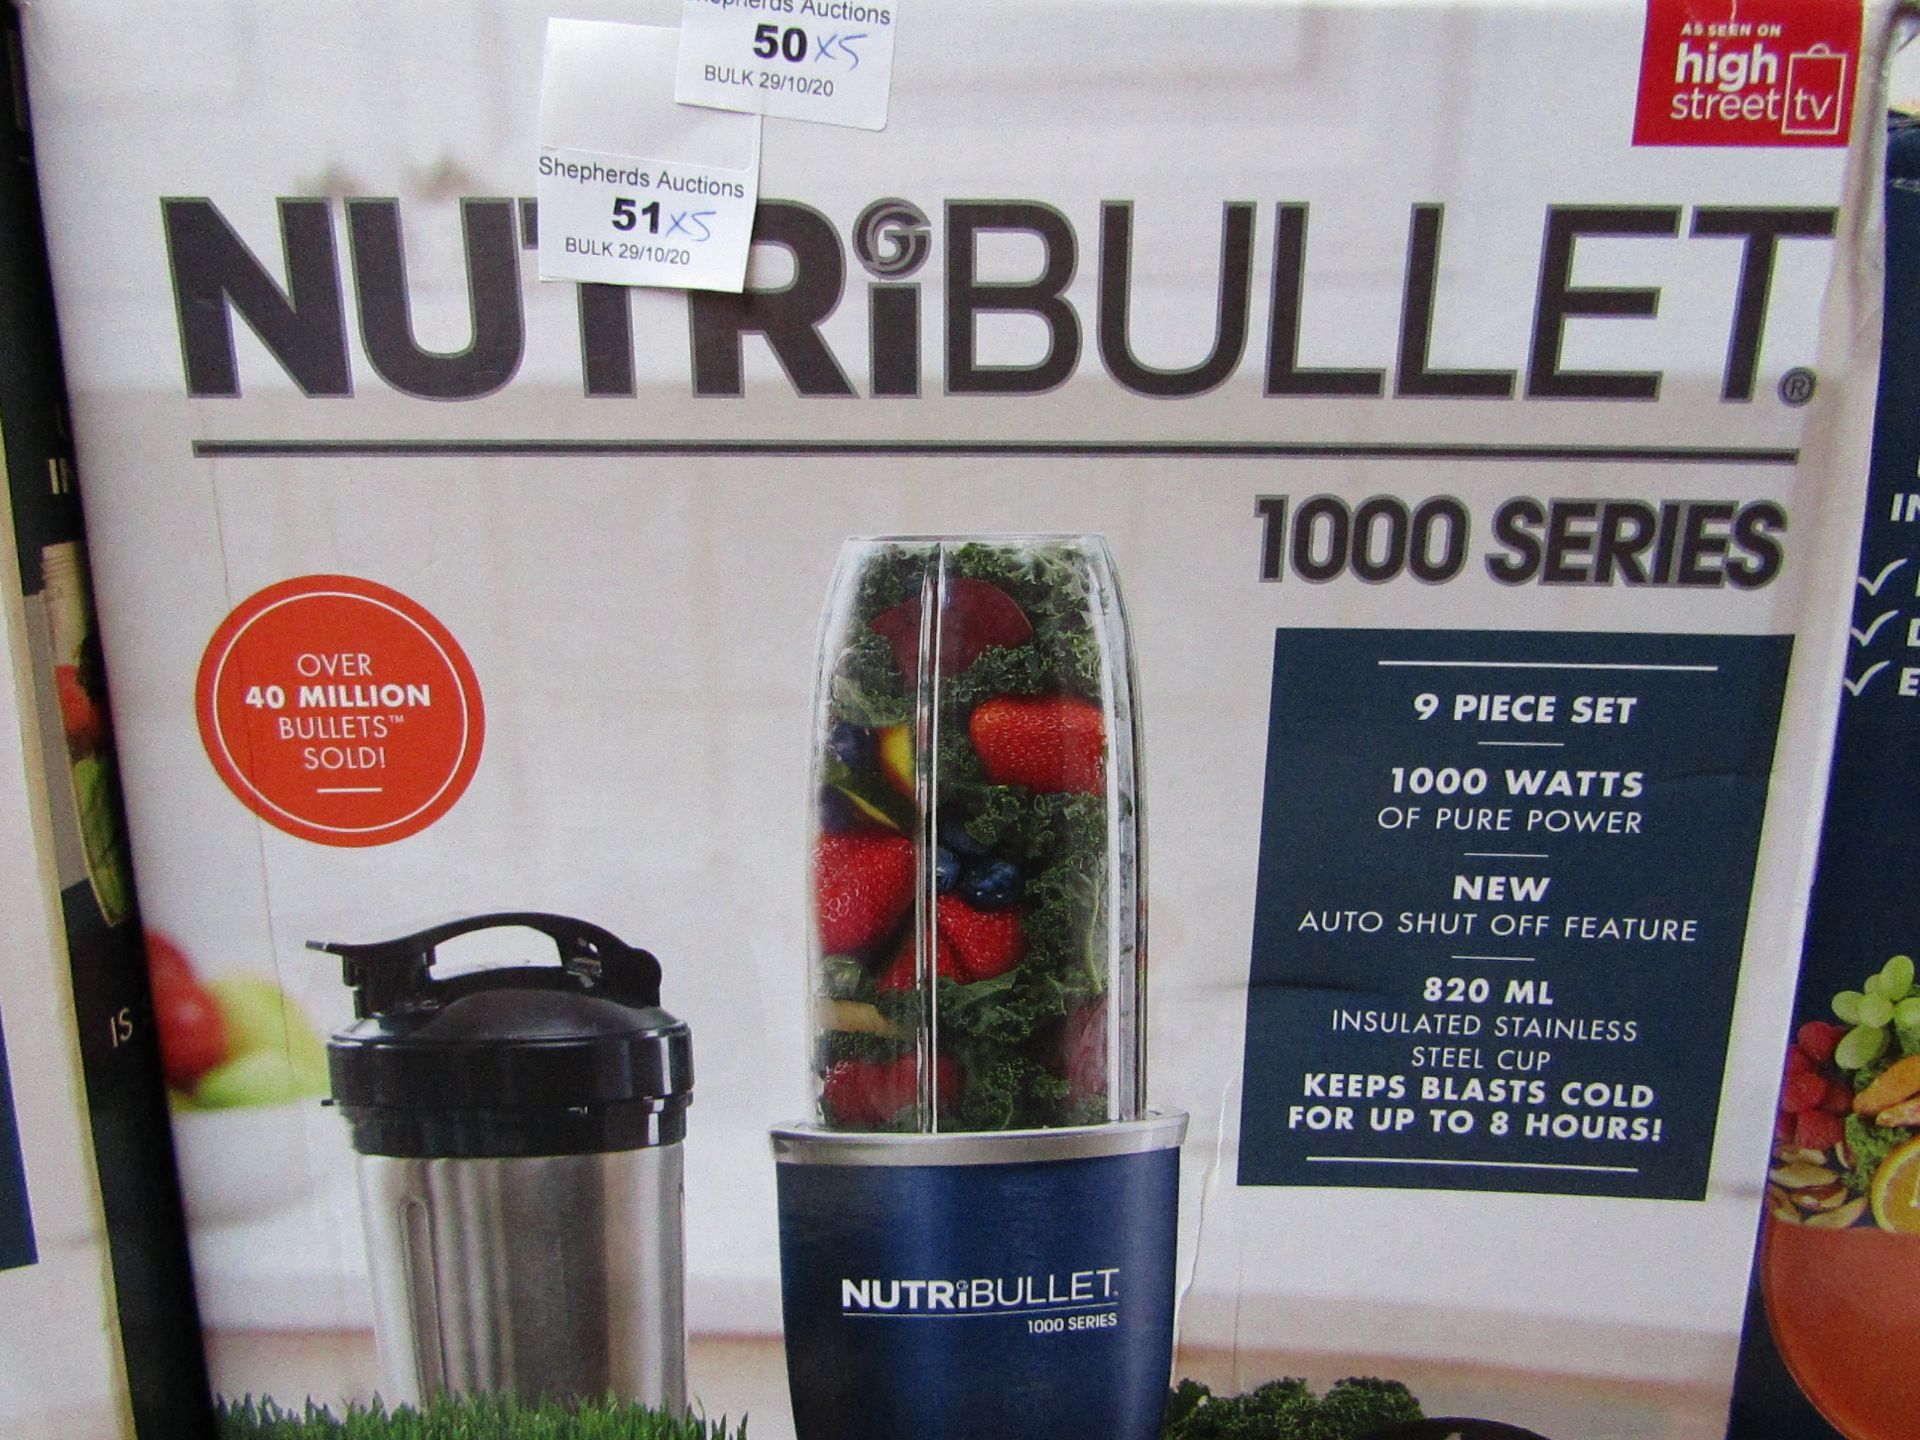   5X   NUTRI BULLET 1000 SERIES   UNCHECKED AND BOXED   NO ONLINE RE SALE   SKU C5060191464734   RRP